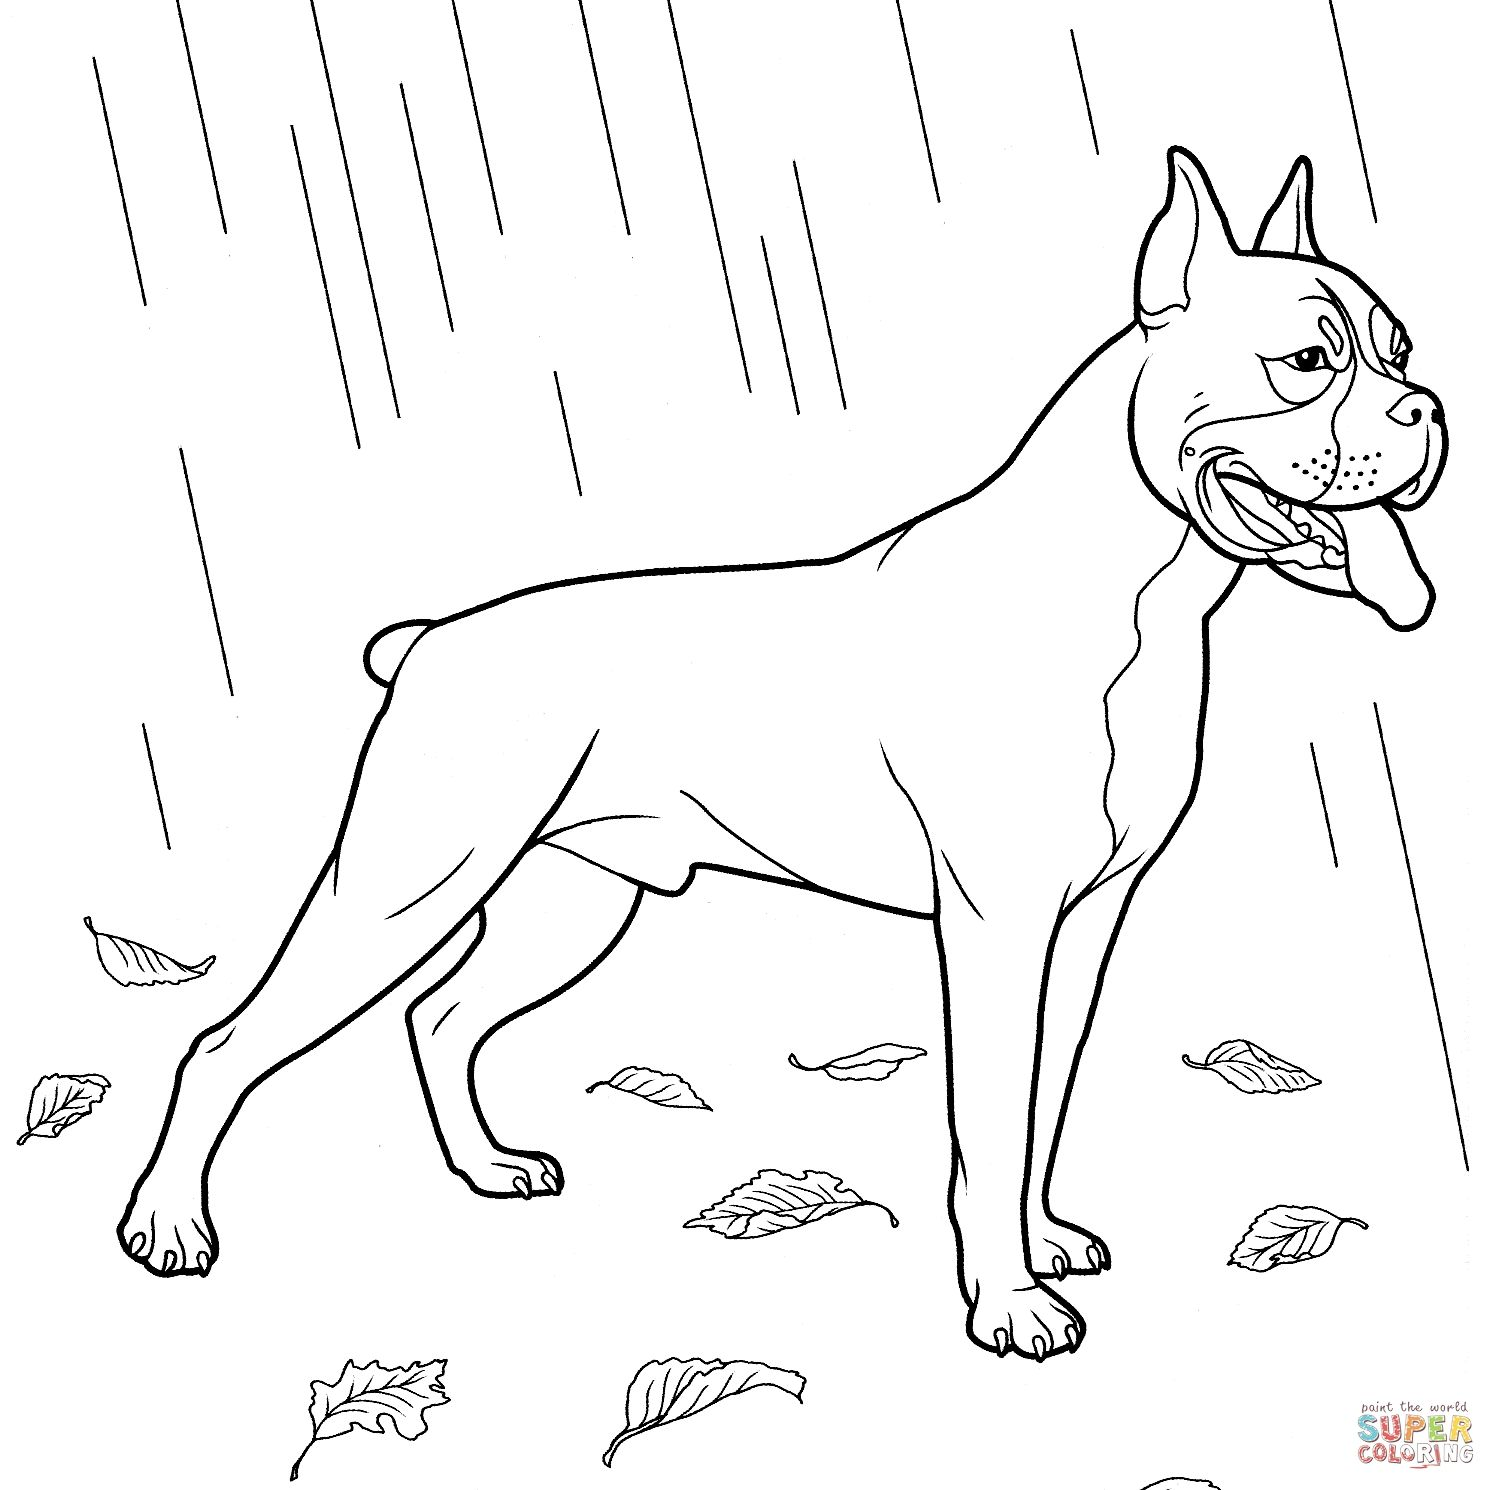 Dog Coloring Pages | Forcoloringpages.com | PSI | Pinterest